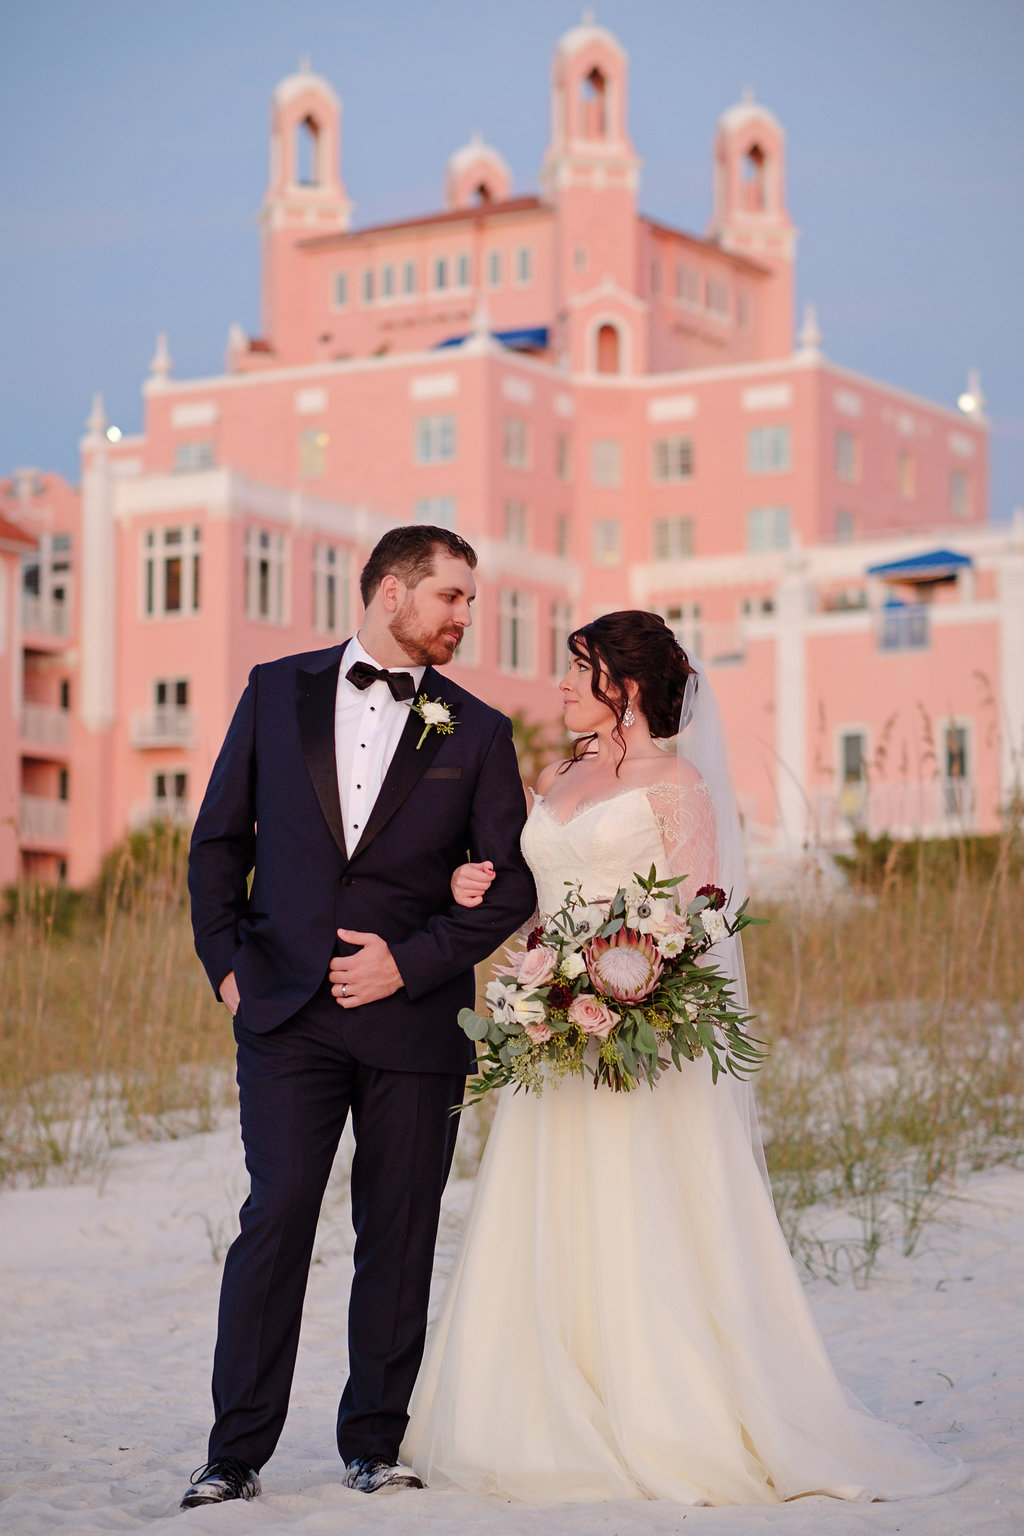 Outdoor Beach Sunset Bride and Groom Wedding Portrait in A Line Wedding Dress with White, Pink, and Burgundy with Greenery Bouquet, Bride in Navy and Black Tuxedo with White Floral Boutonniere | St Petersburg Wedding Photographer Marc Edwards Photography | Hair and Makeup Femme Akoi Beauty Studio | Historic St Pete Waterfront Hotel Wedding Venue The Don CeSar